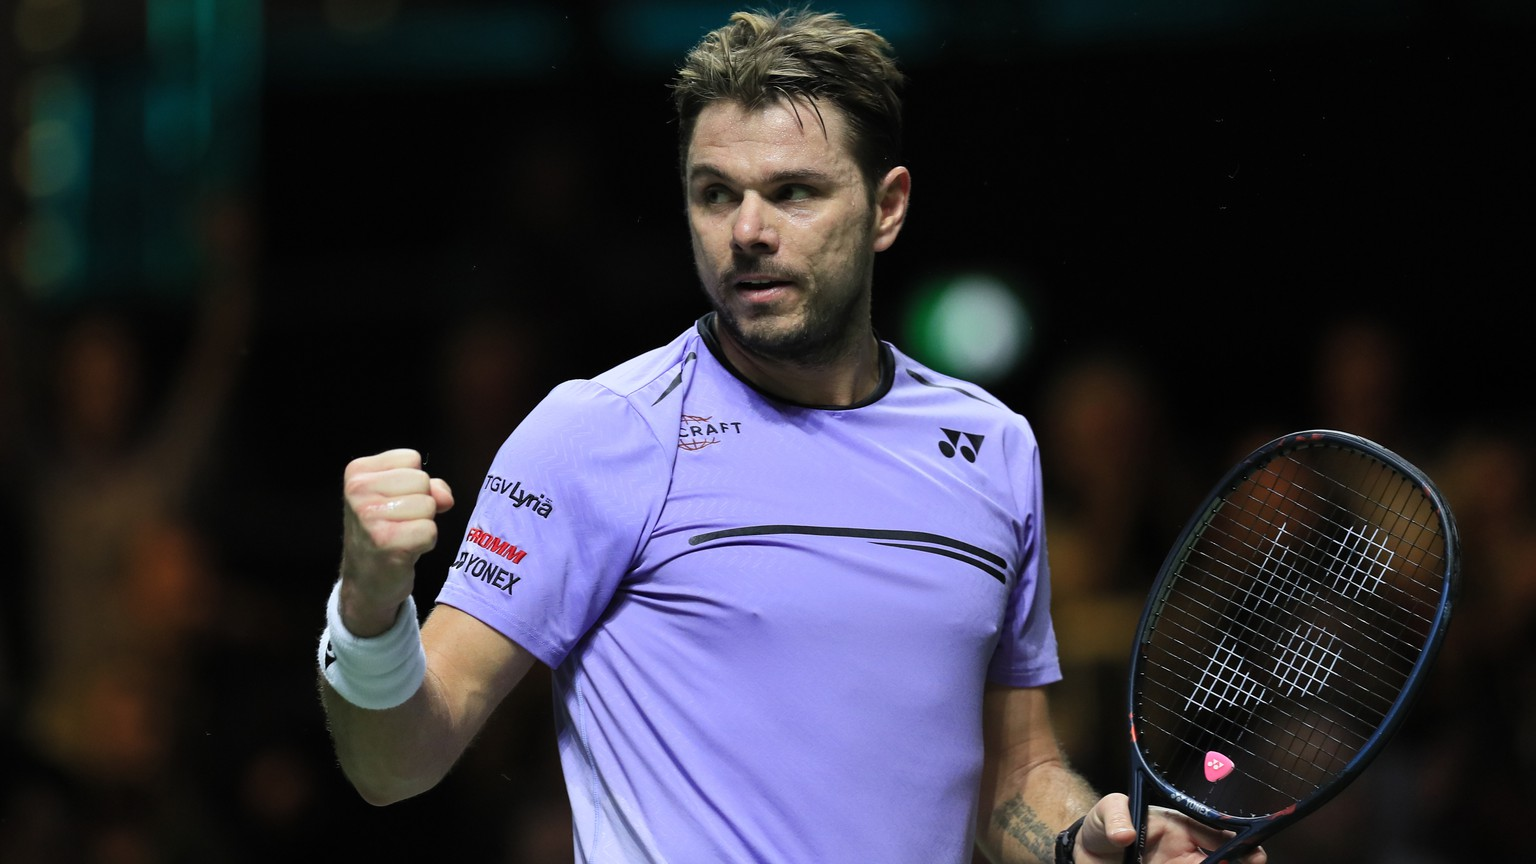 Stan Wawrinka of Switzerland clenches his fist after scoring a point against Gael Monfils of France in the men's singles final of the ABN AMRO world tennis tournament at Ahoy Arena in Rotterdam, Netherlands, Sunday, Feb. 17, 2019. (AP Photo/Peter Dejong)